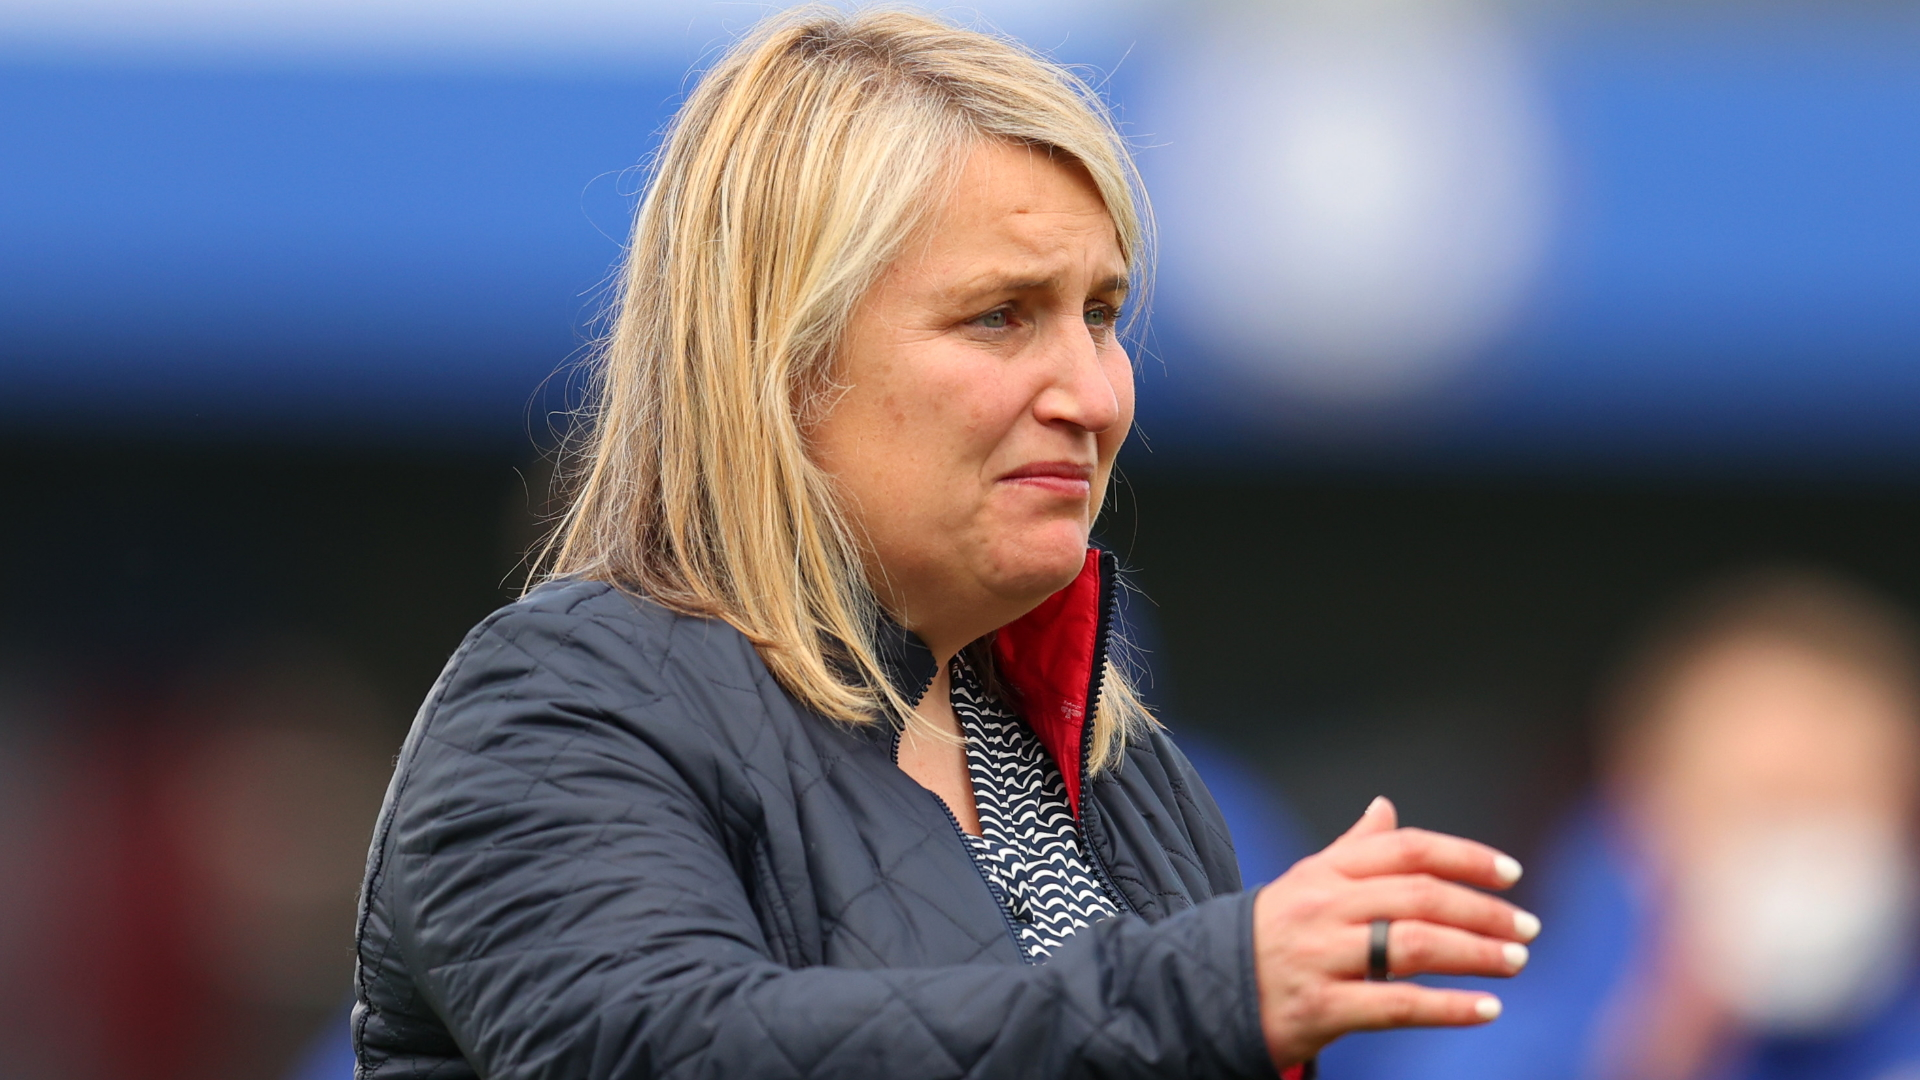 Chelsea Women's boss Hayes fears social media abuse of players could lead to suicides